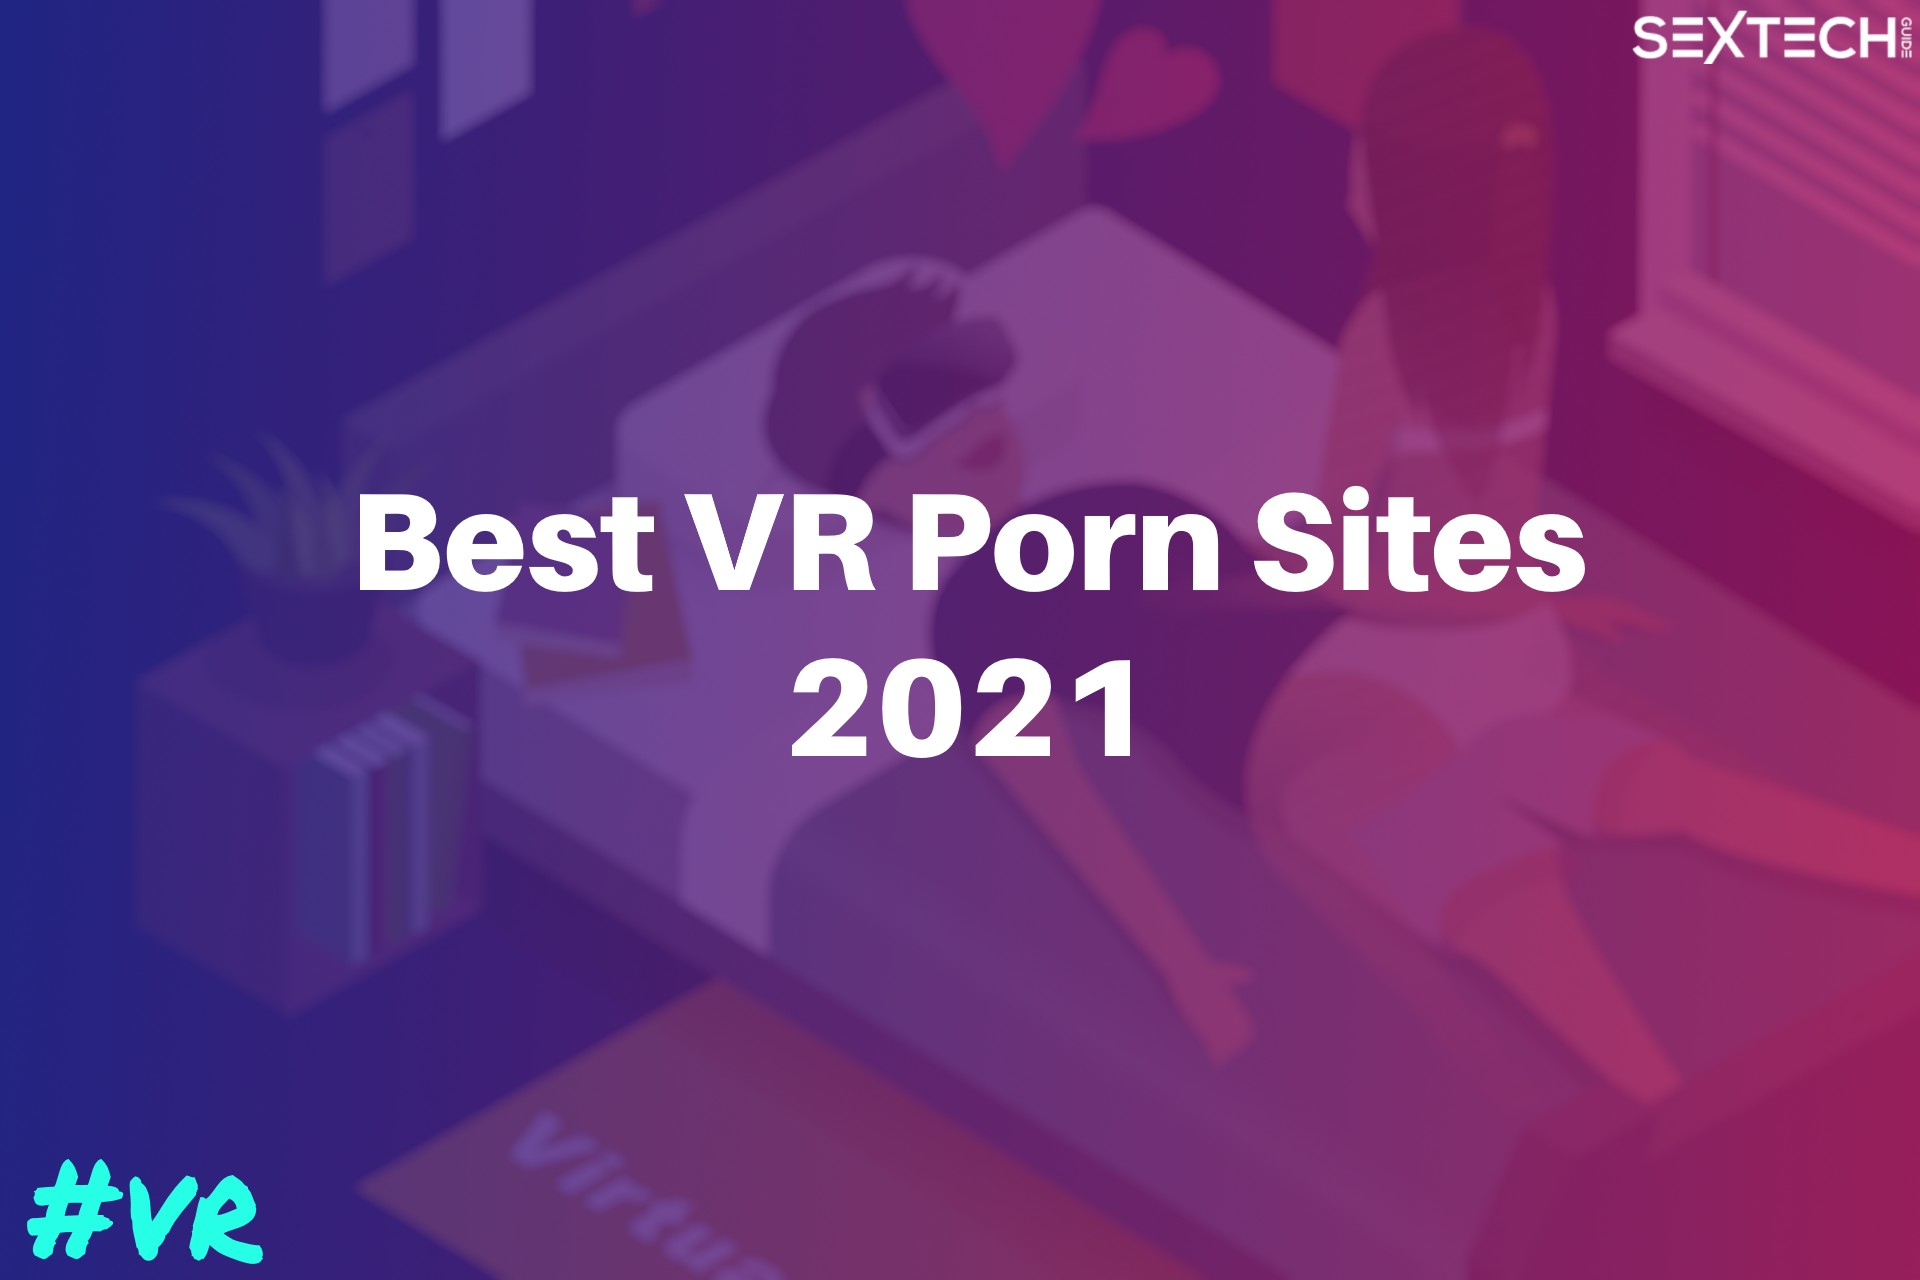 Best VR Porn Sites 2021